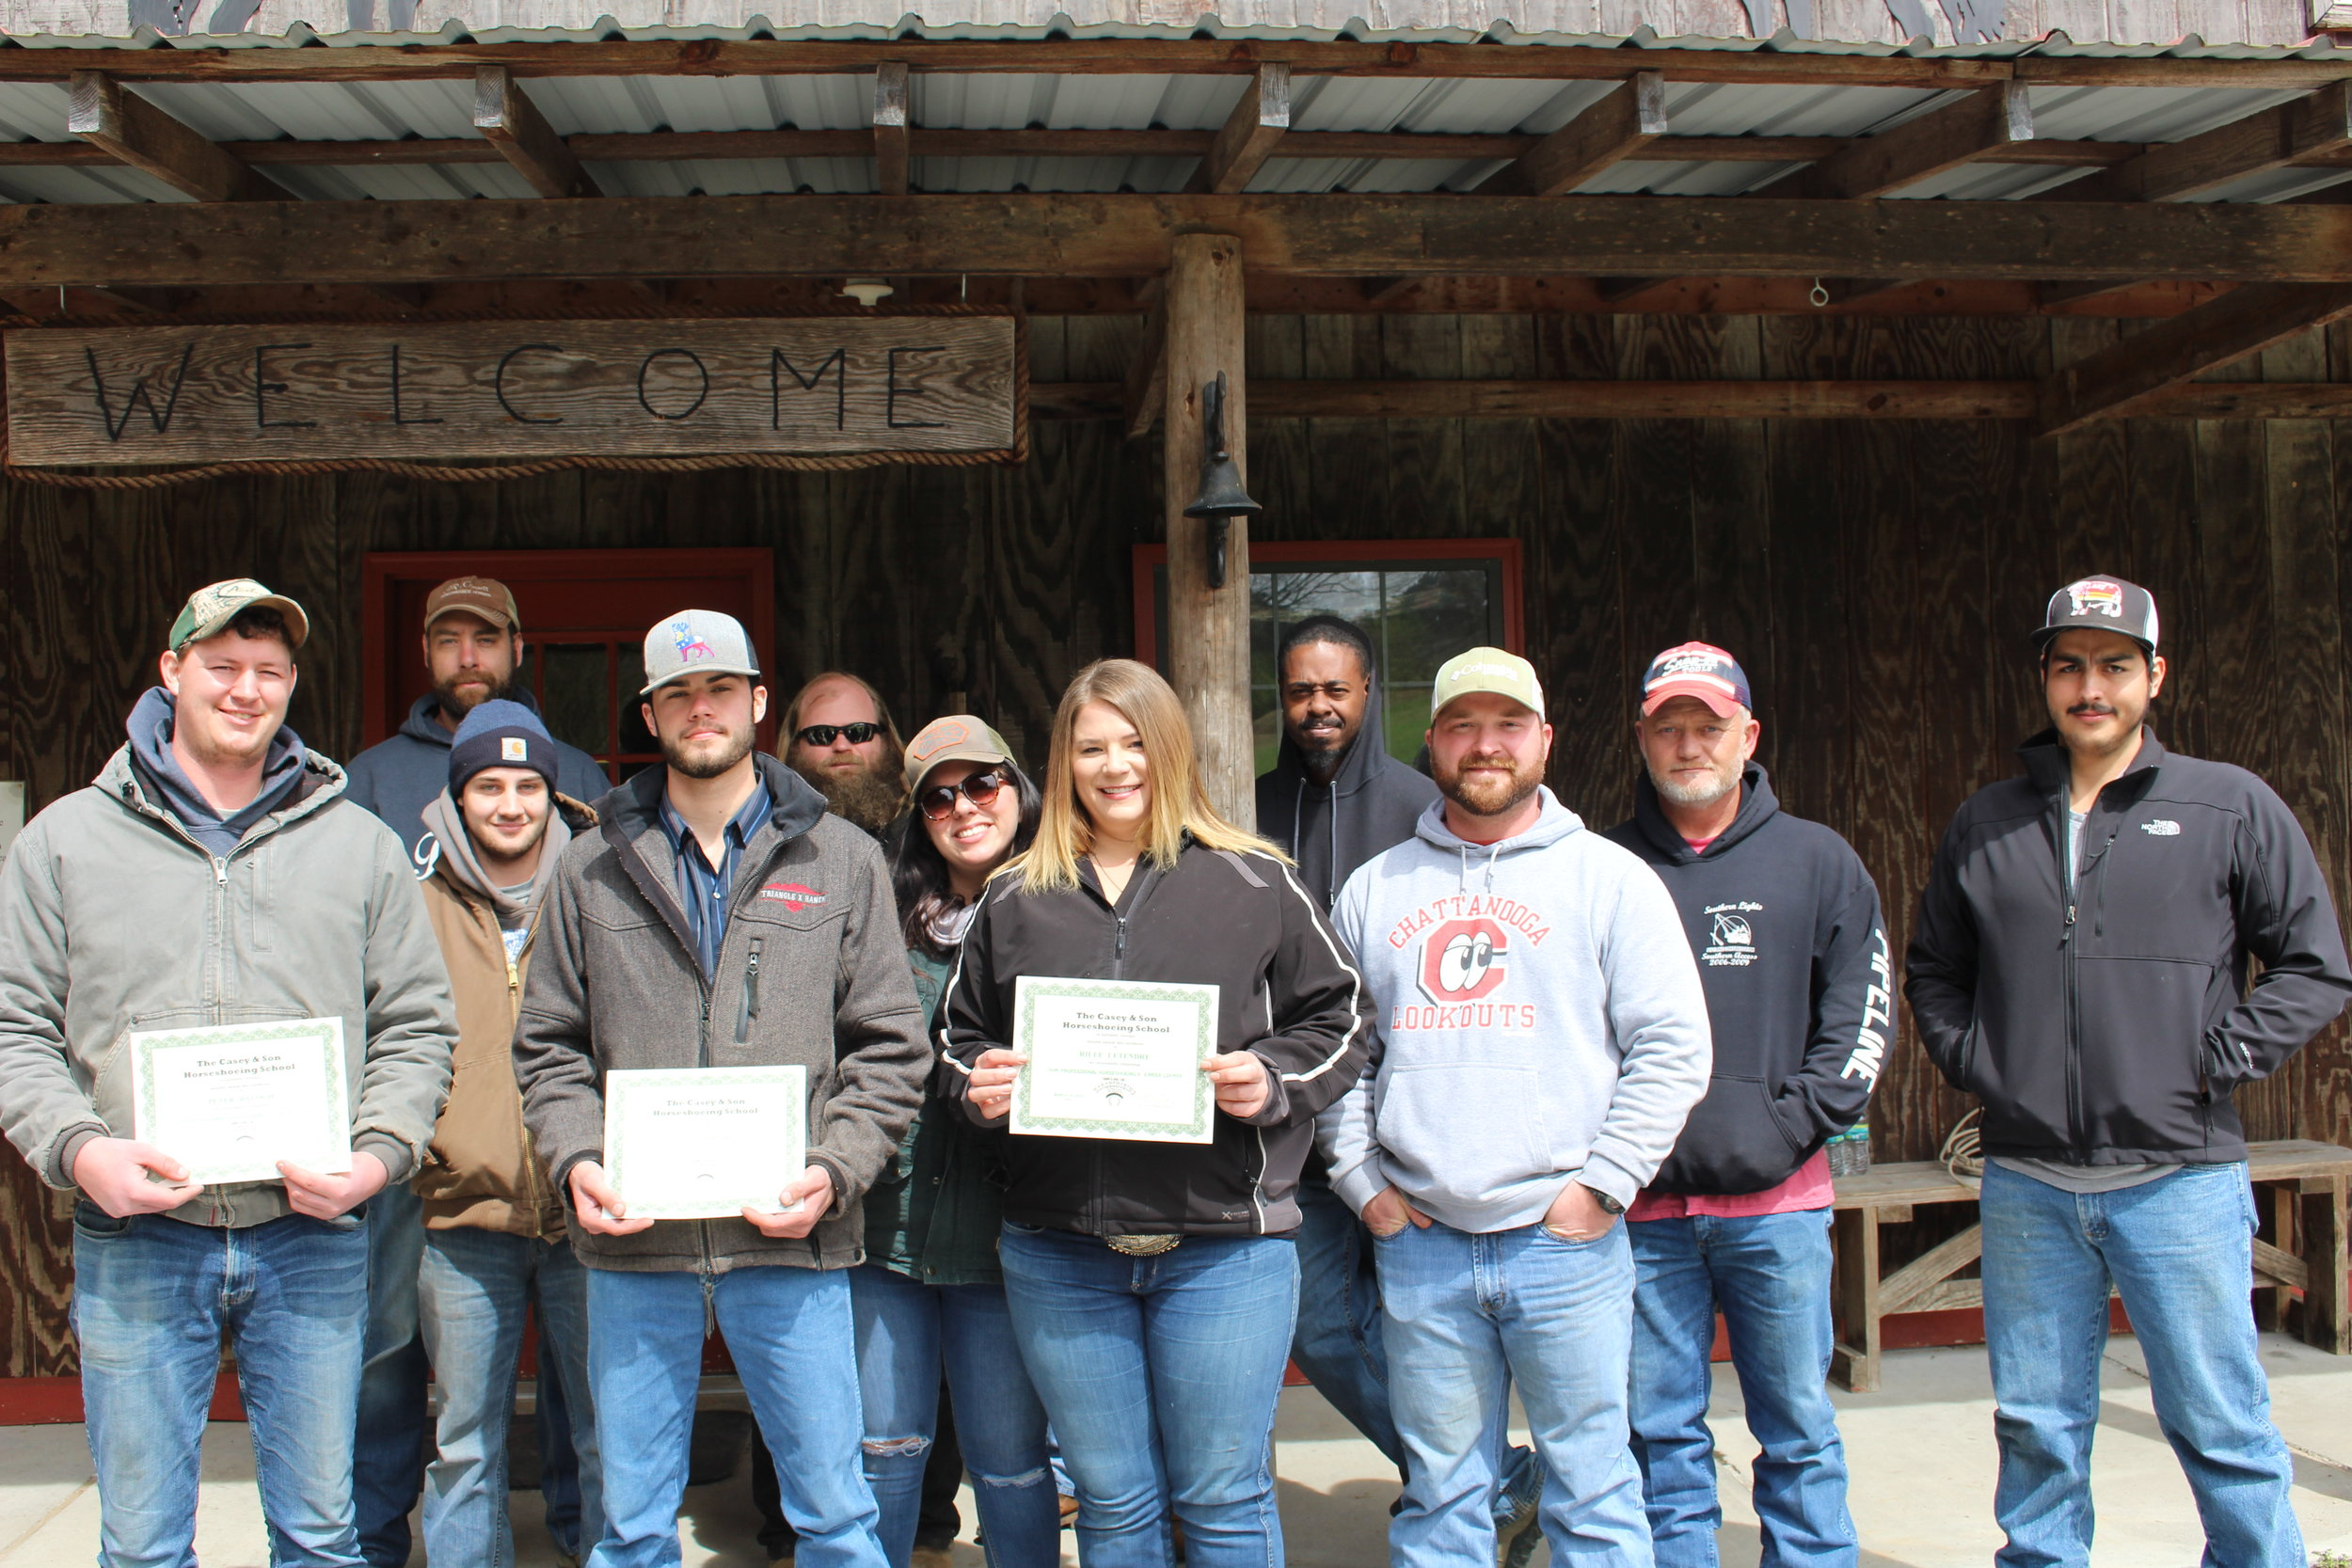 Graduate Farriers from Casey Horseshoeing School, Peter Balogh of MD, Cade Rogers of WY, Rilee Letendre of Canada with Link Casey, Instructor, Owner and current students 3.16.2019.JPG